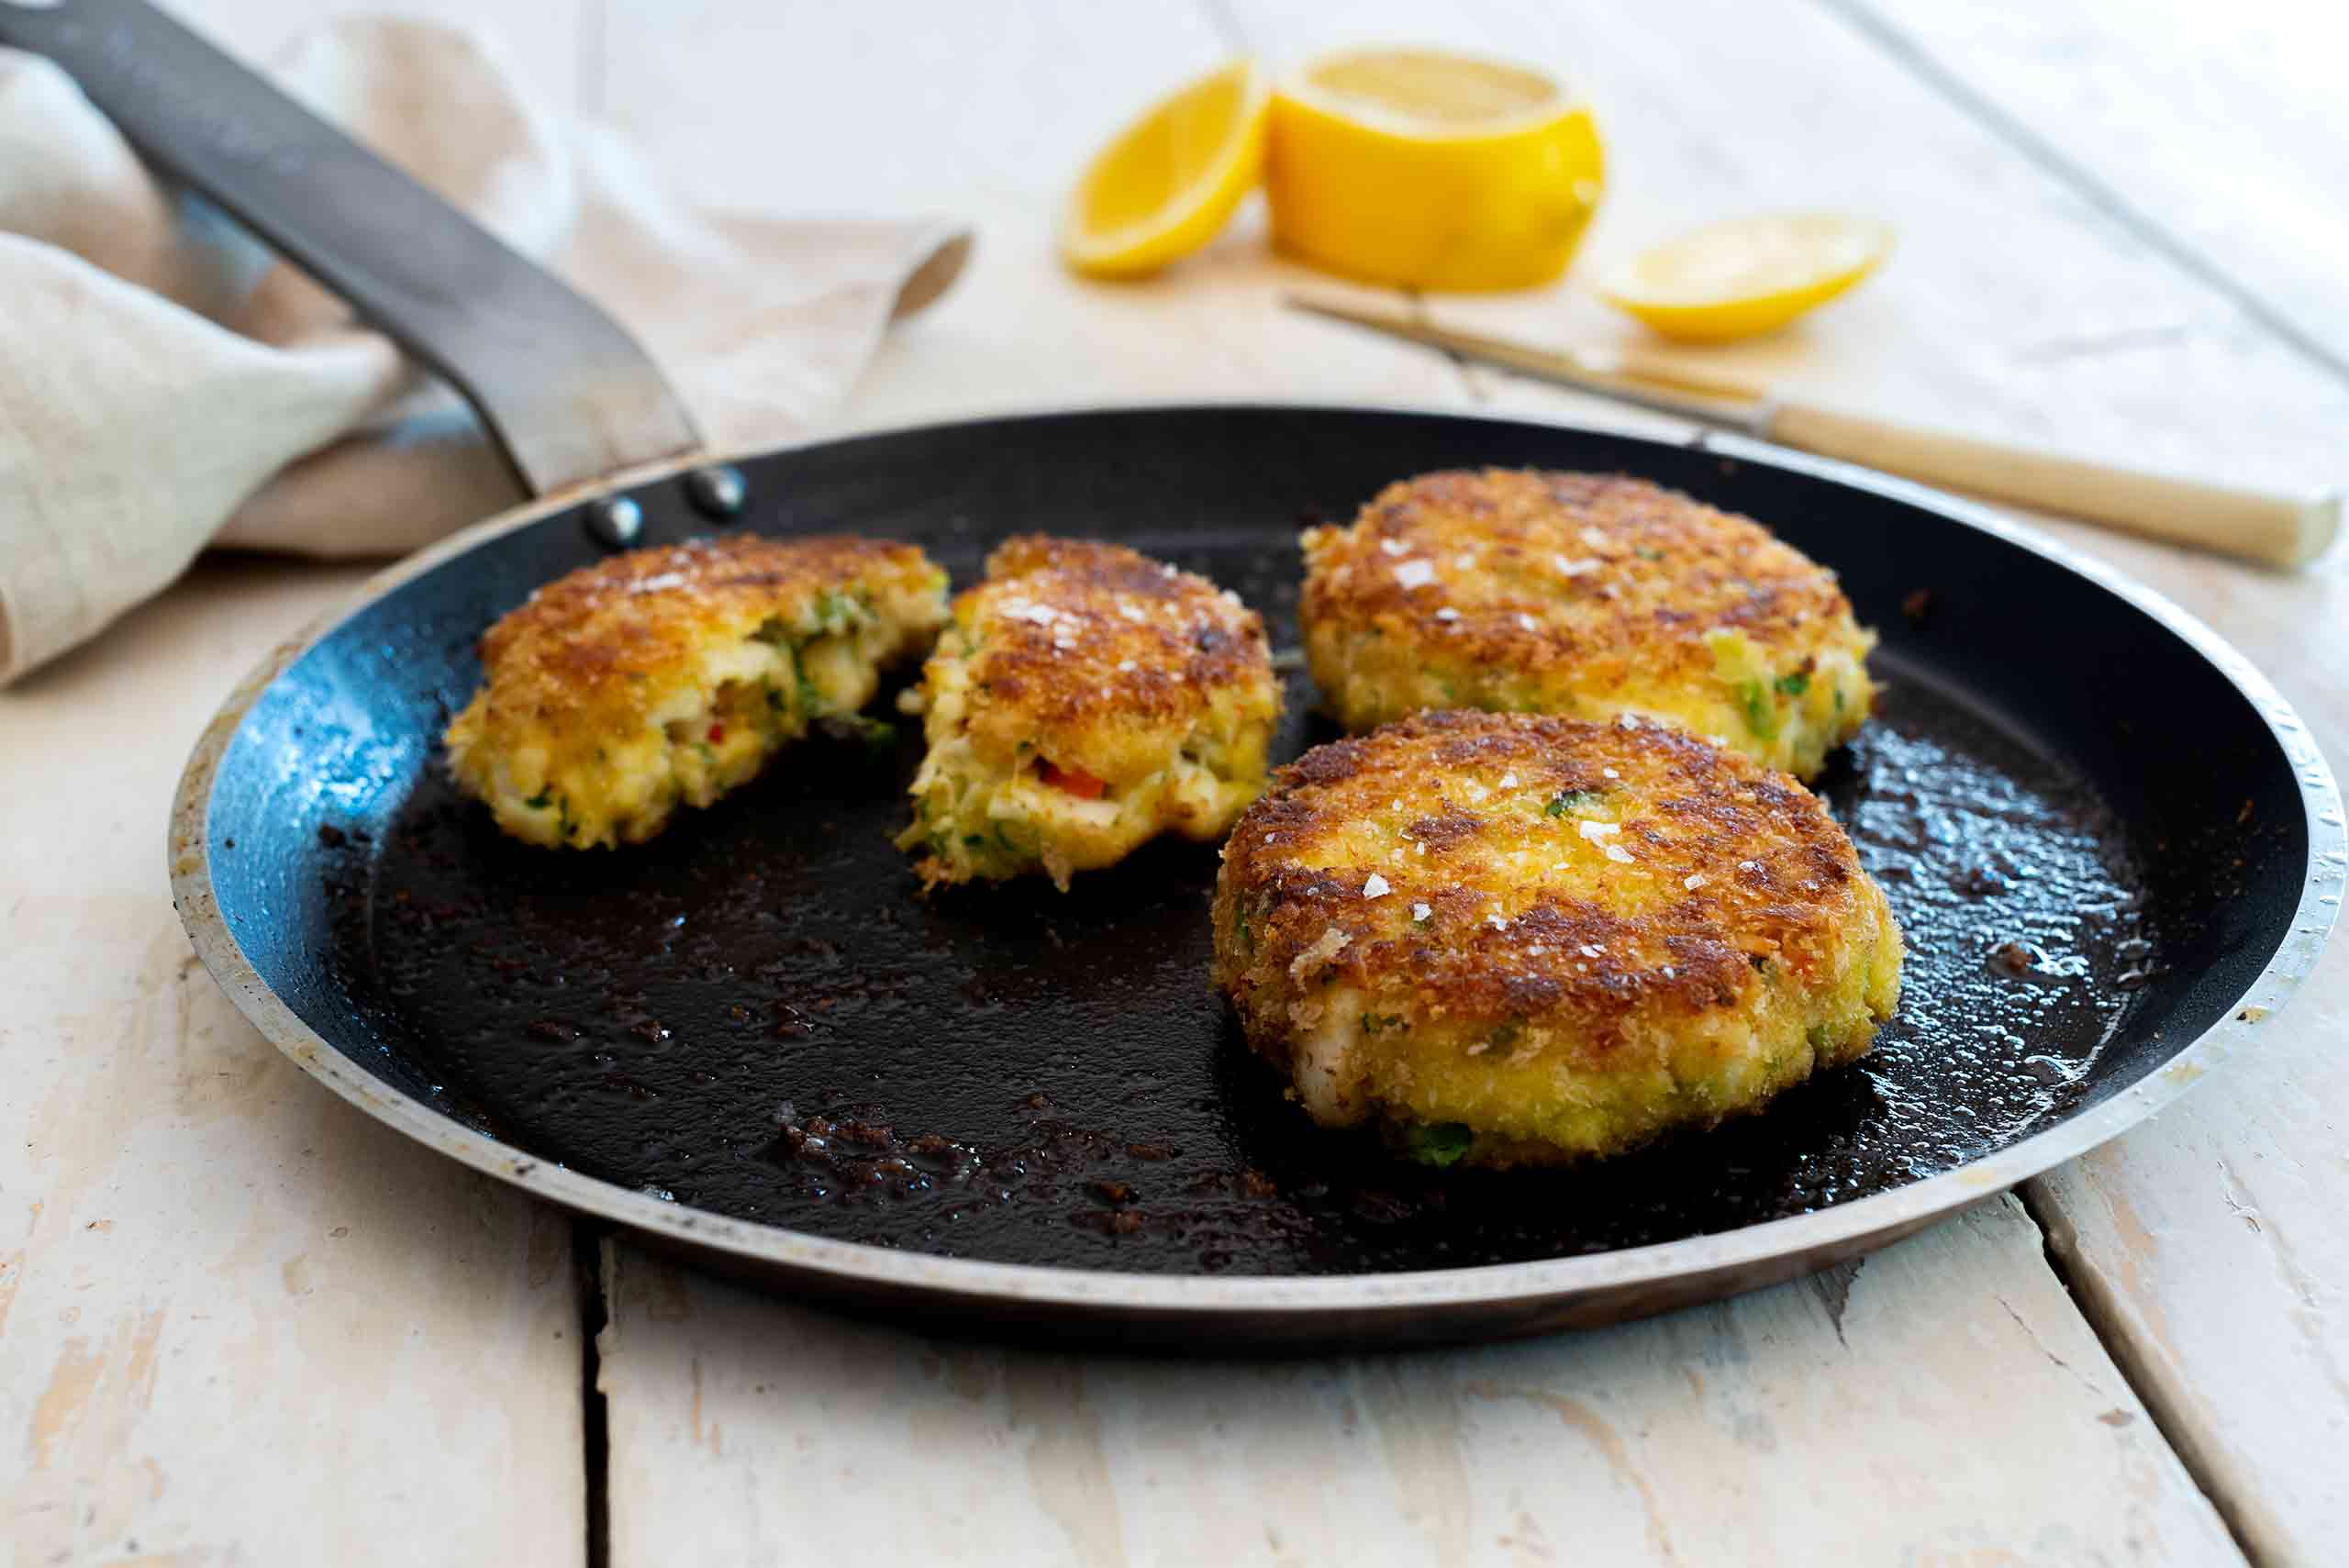 Editorial food photography featuring Crab Cakes in the frypan by Australian food expert Tawnya Bahr